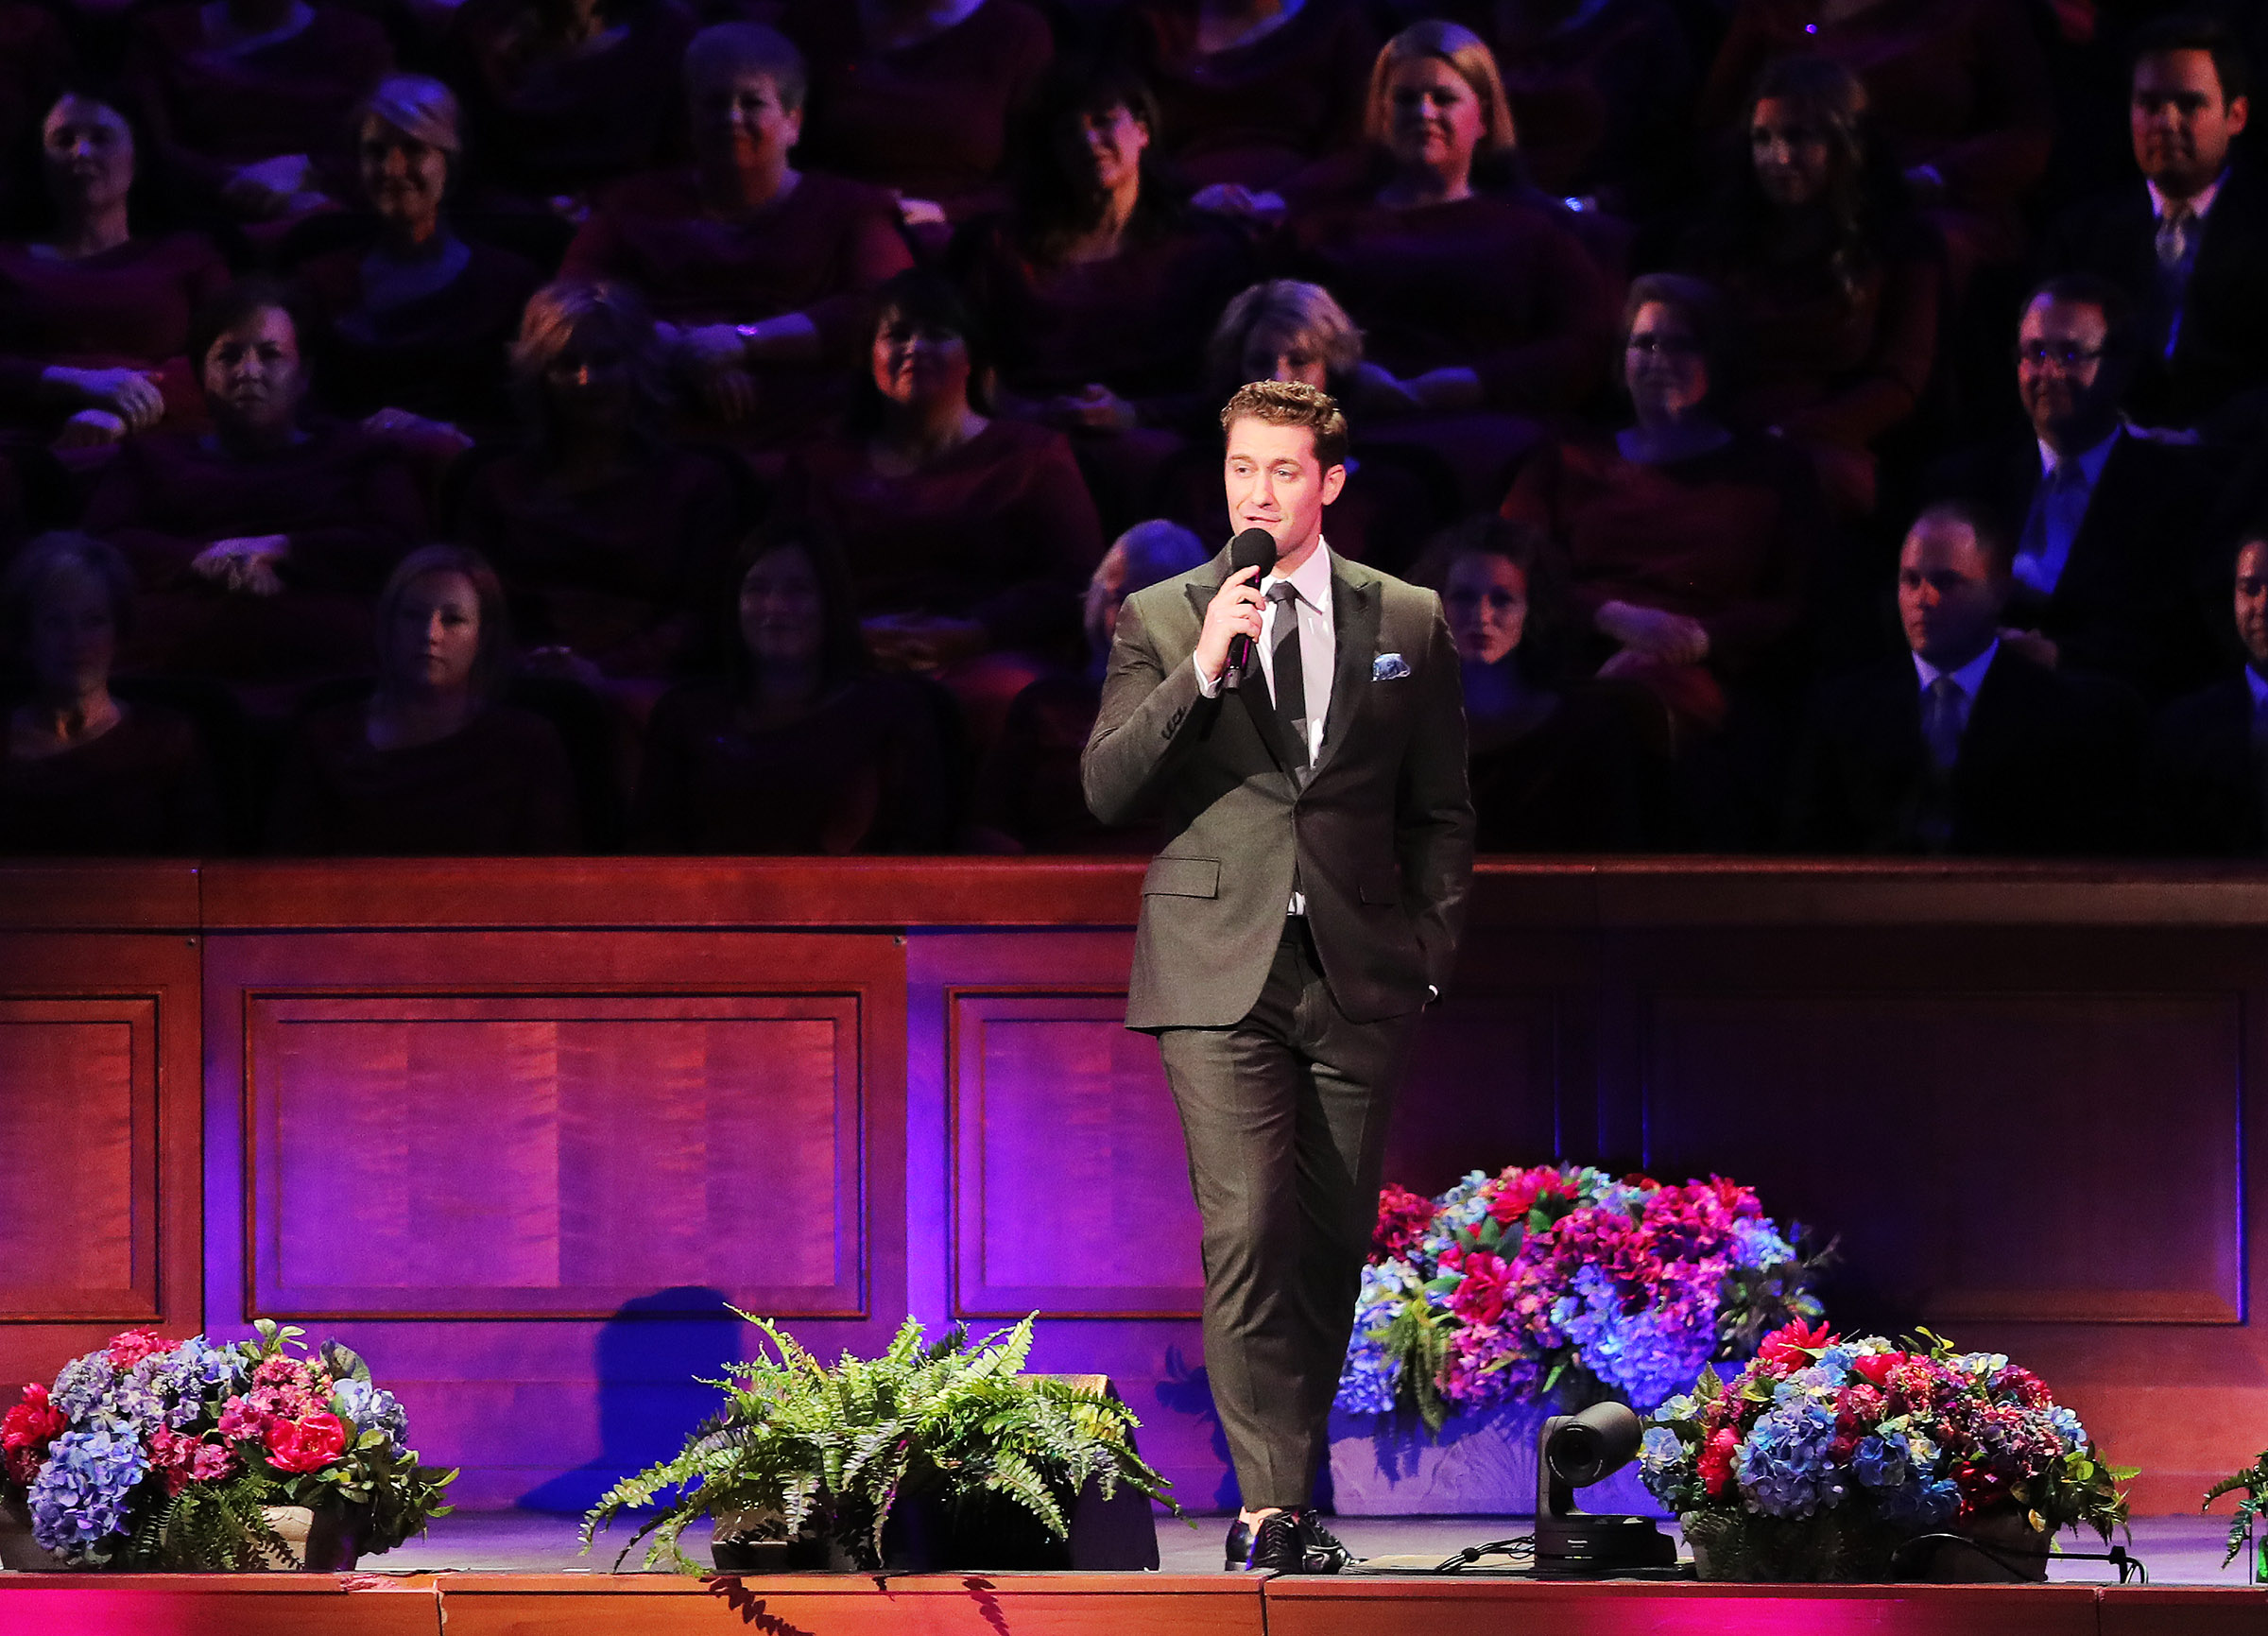 Matthew Morrison sings as he joins the Mormon Tabernacle Choir and Orchestra at Temple Square in their annual Pioneer Concert at the Conference Center in Salt Lake City on Friday, July 20, 2018.